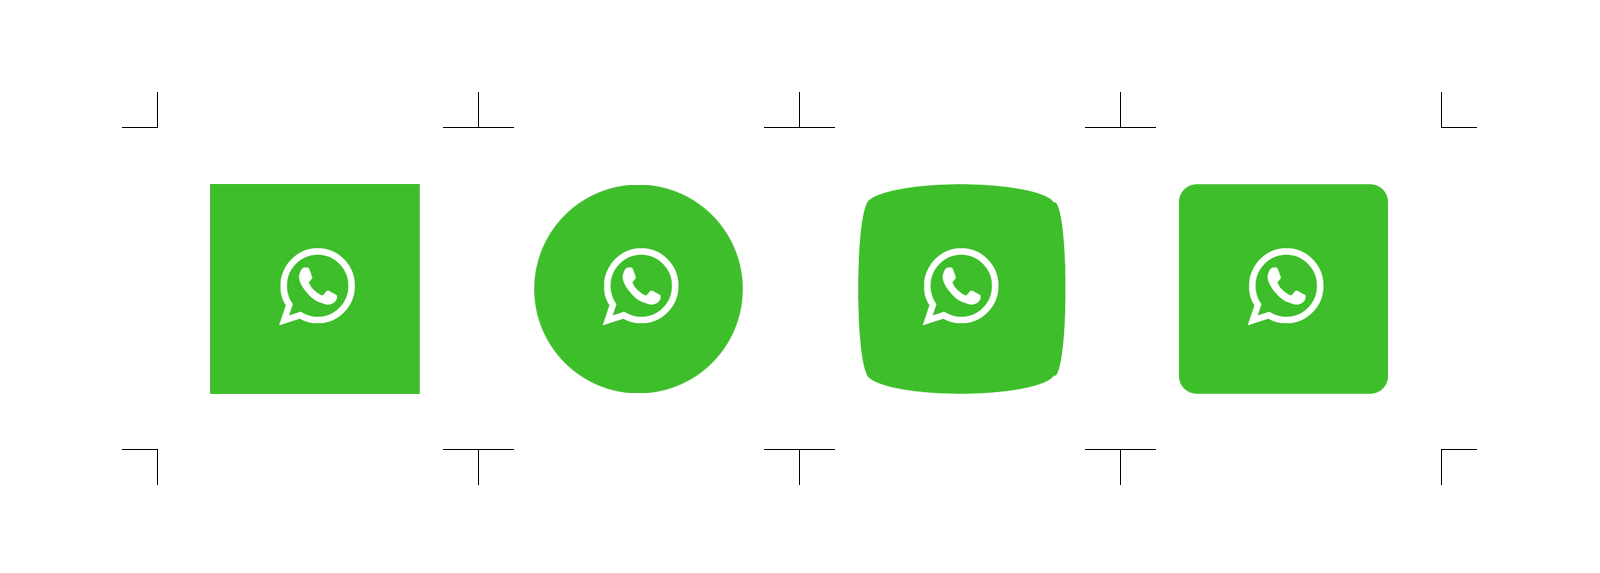 Custom png buttons. Whatsapp share button profitquery